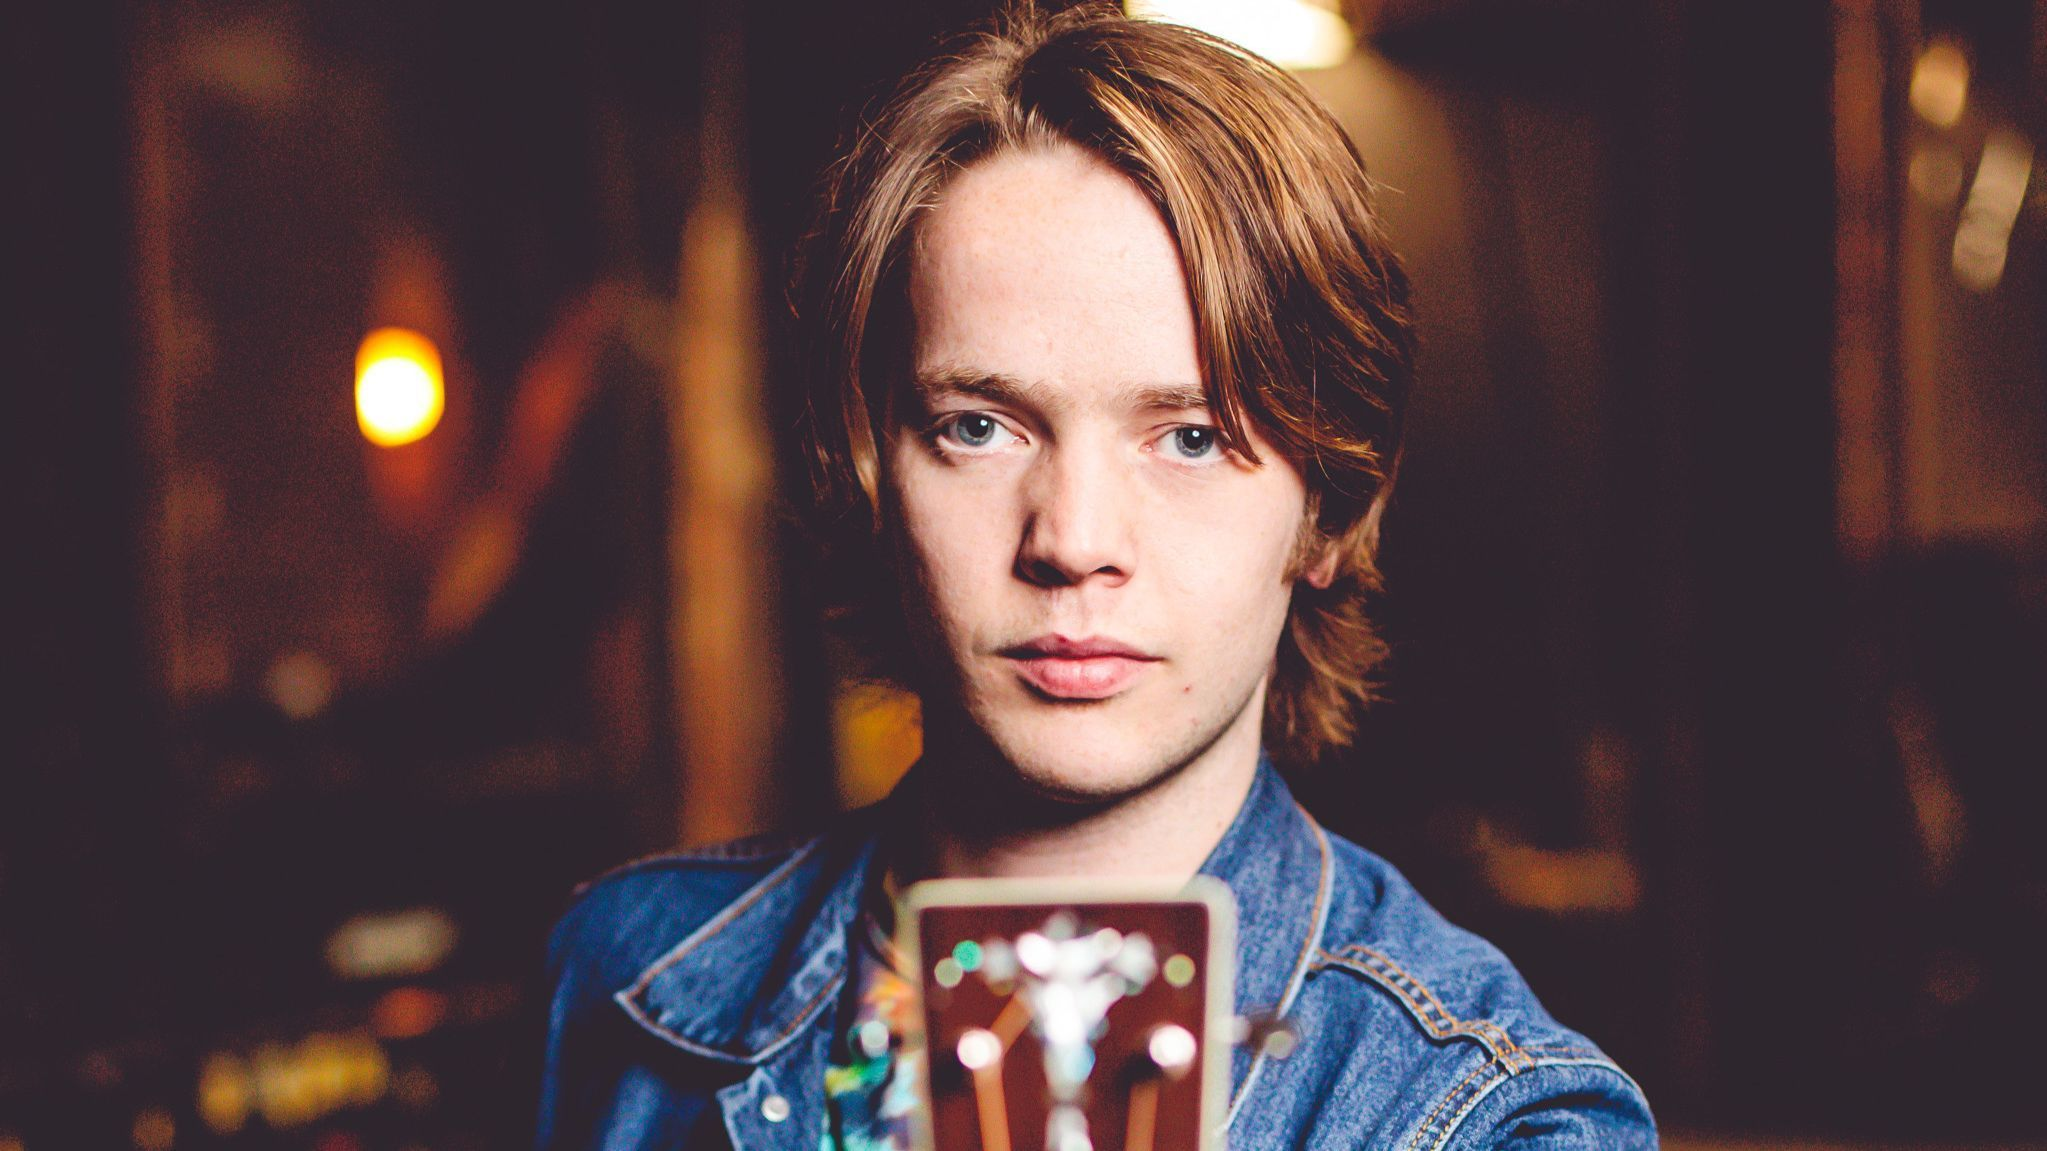 Billy Strings, metal head turned bluegrass wiz, set for San Diego gig at Soda Bar